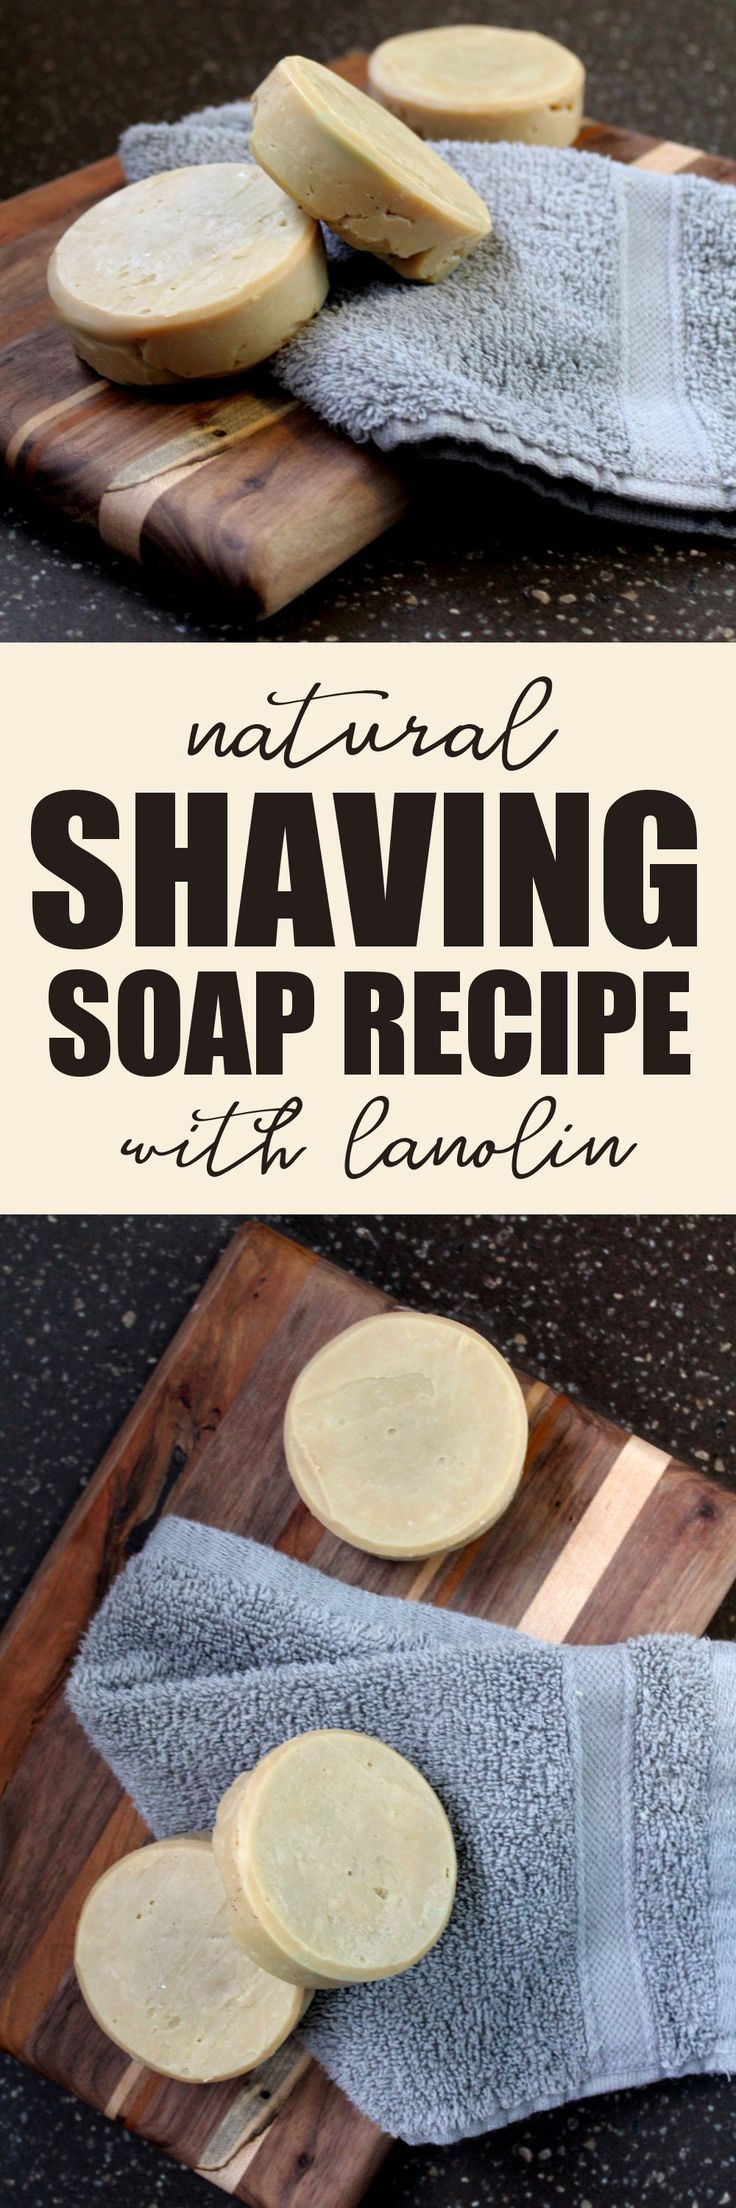 Natural Shaving Soap Recipe with Hydrating Lanolin and Neem Oil to Promote Skin Health! Making the switch to a natural shaving soap is a more environmentally friendly choice. This homemade shaving soap recipe with lanolin and neem oil is not only a great green alternative, but it's also budget conscience so you save money in the long run over purchasing a commercial product. #soap #shavingsoap #soapmaking #handmadesoap #artisansoap #diy #soapgifts #soapcrafting #soapshare #soaprecipes